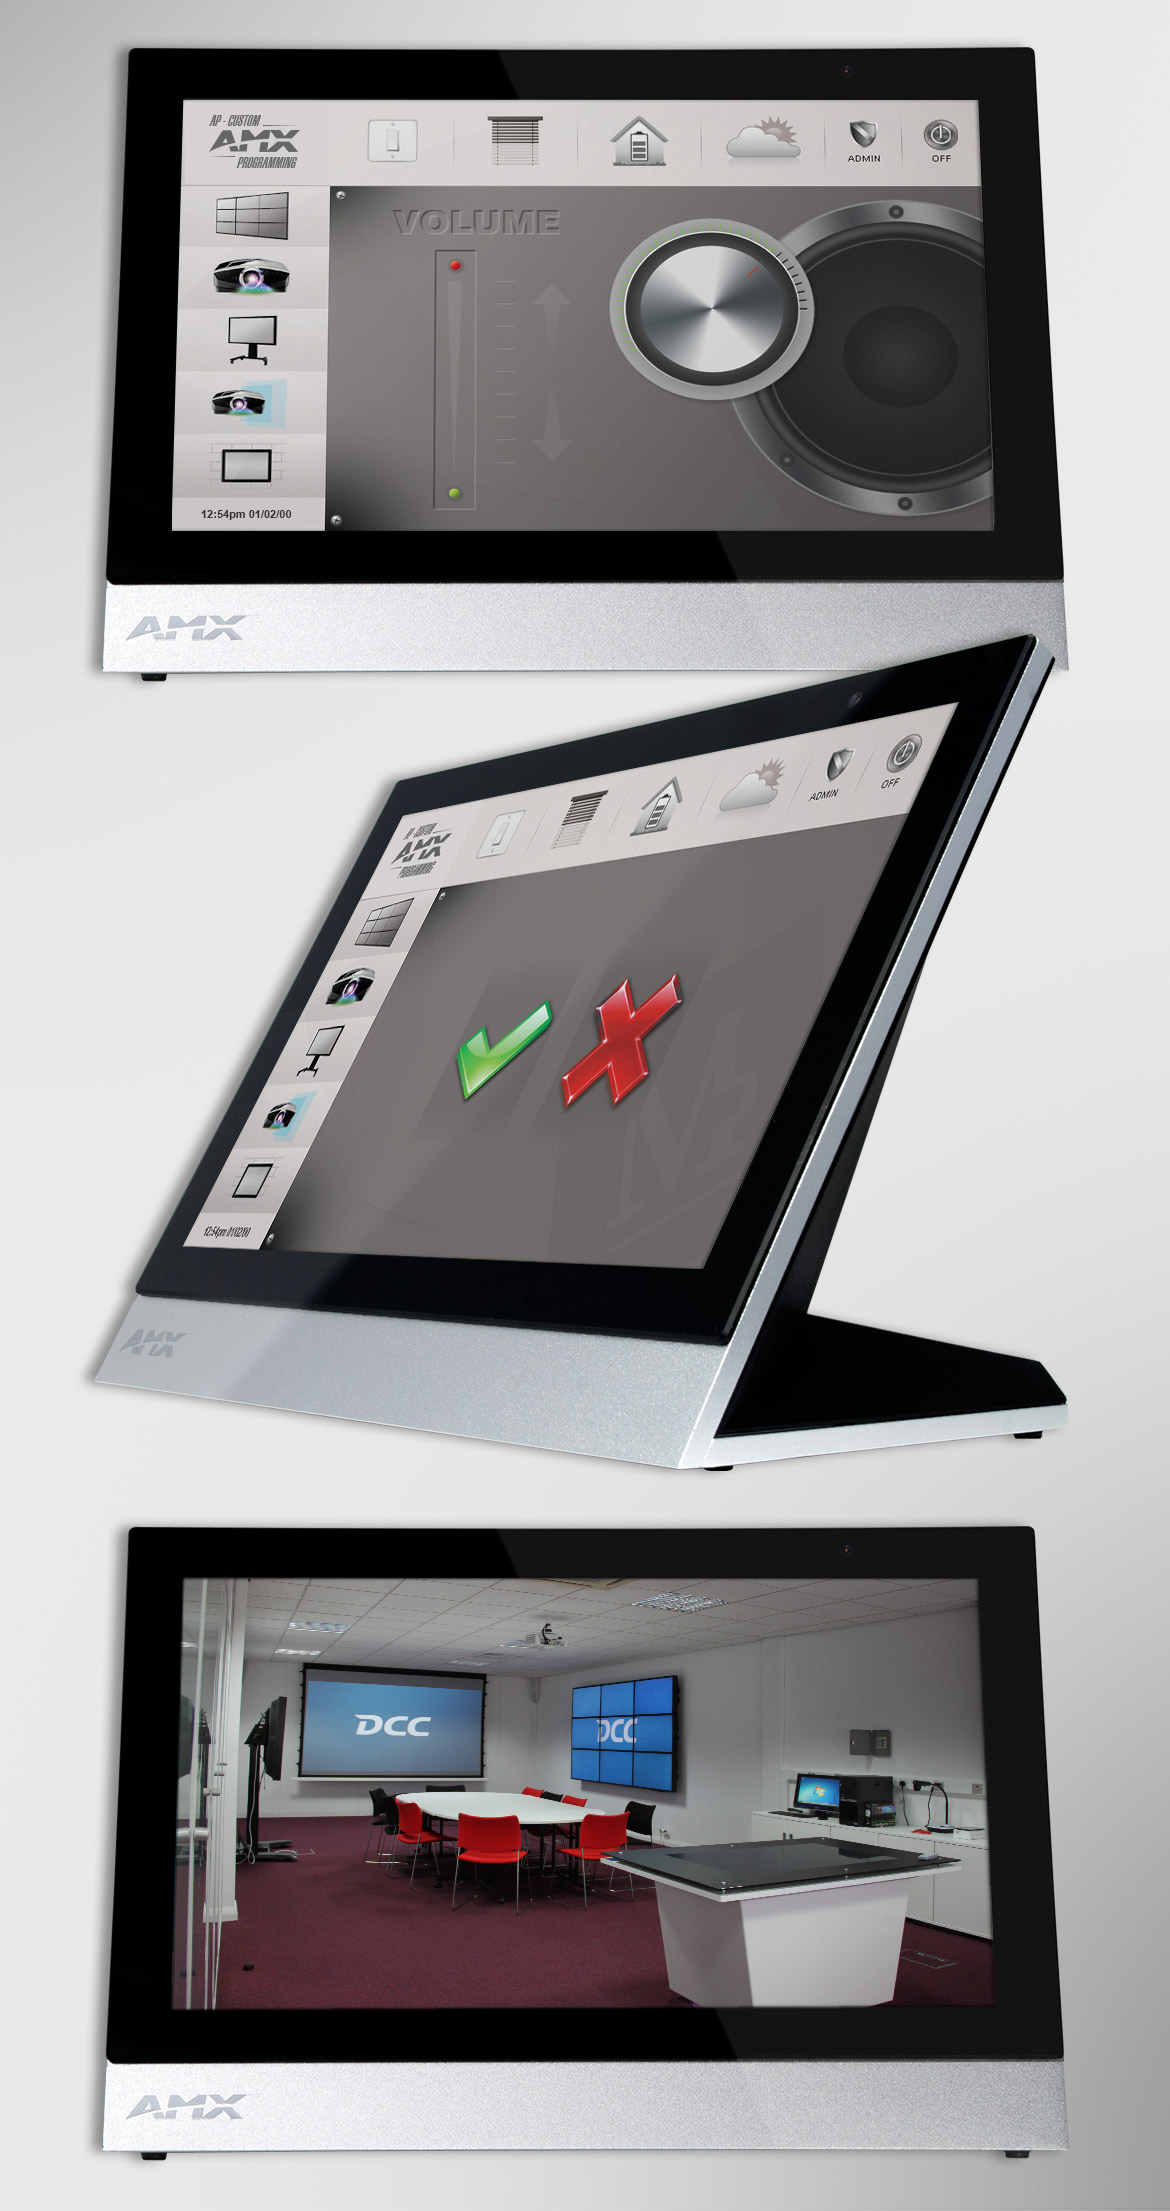 User Interface Design for Touch Screen Control Panels